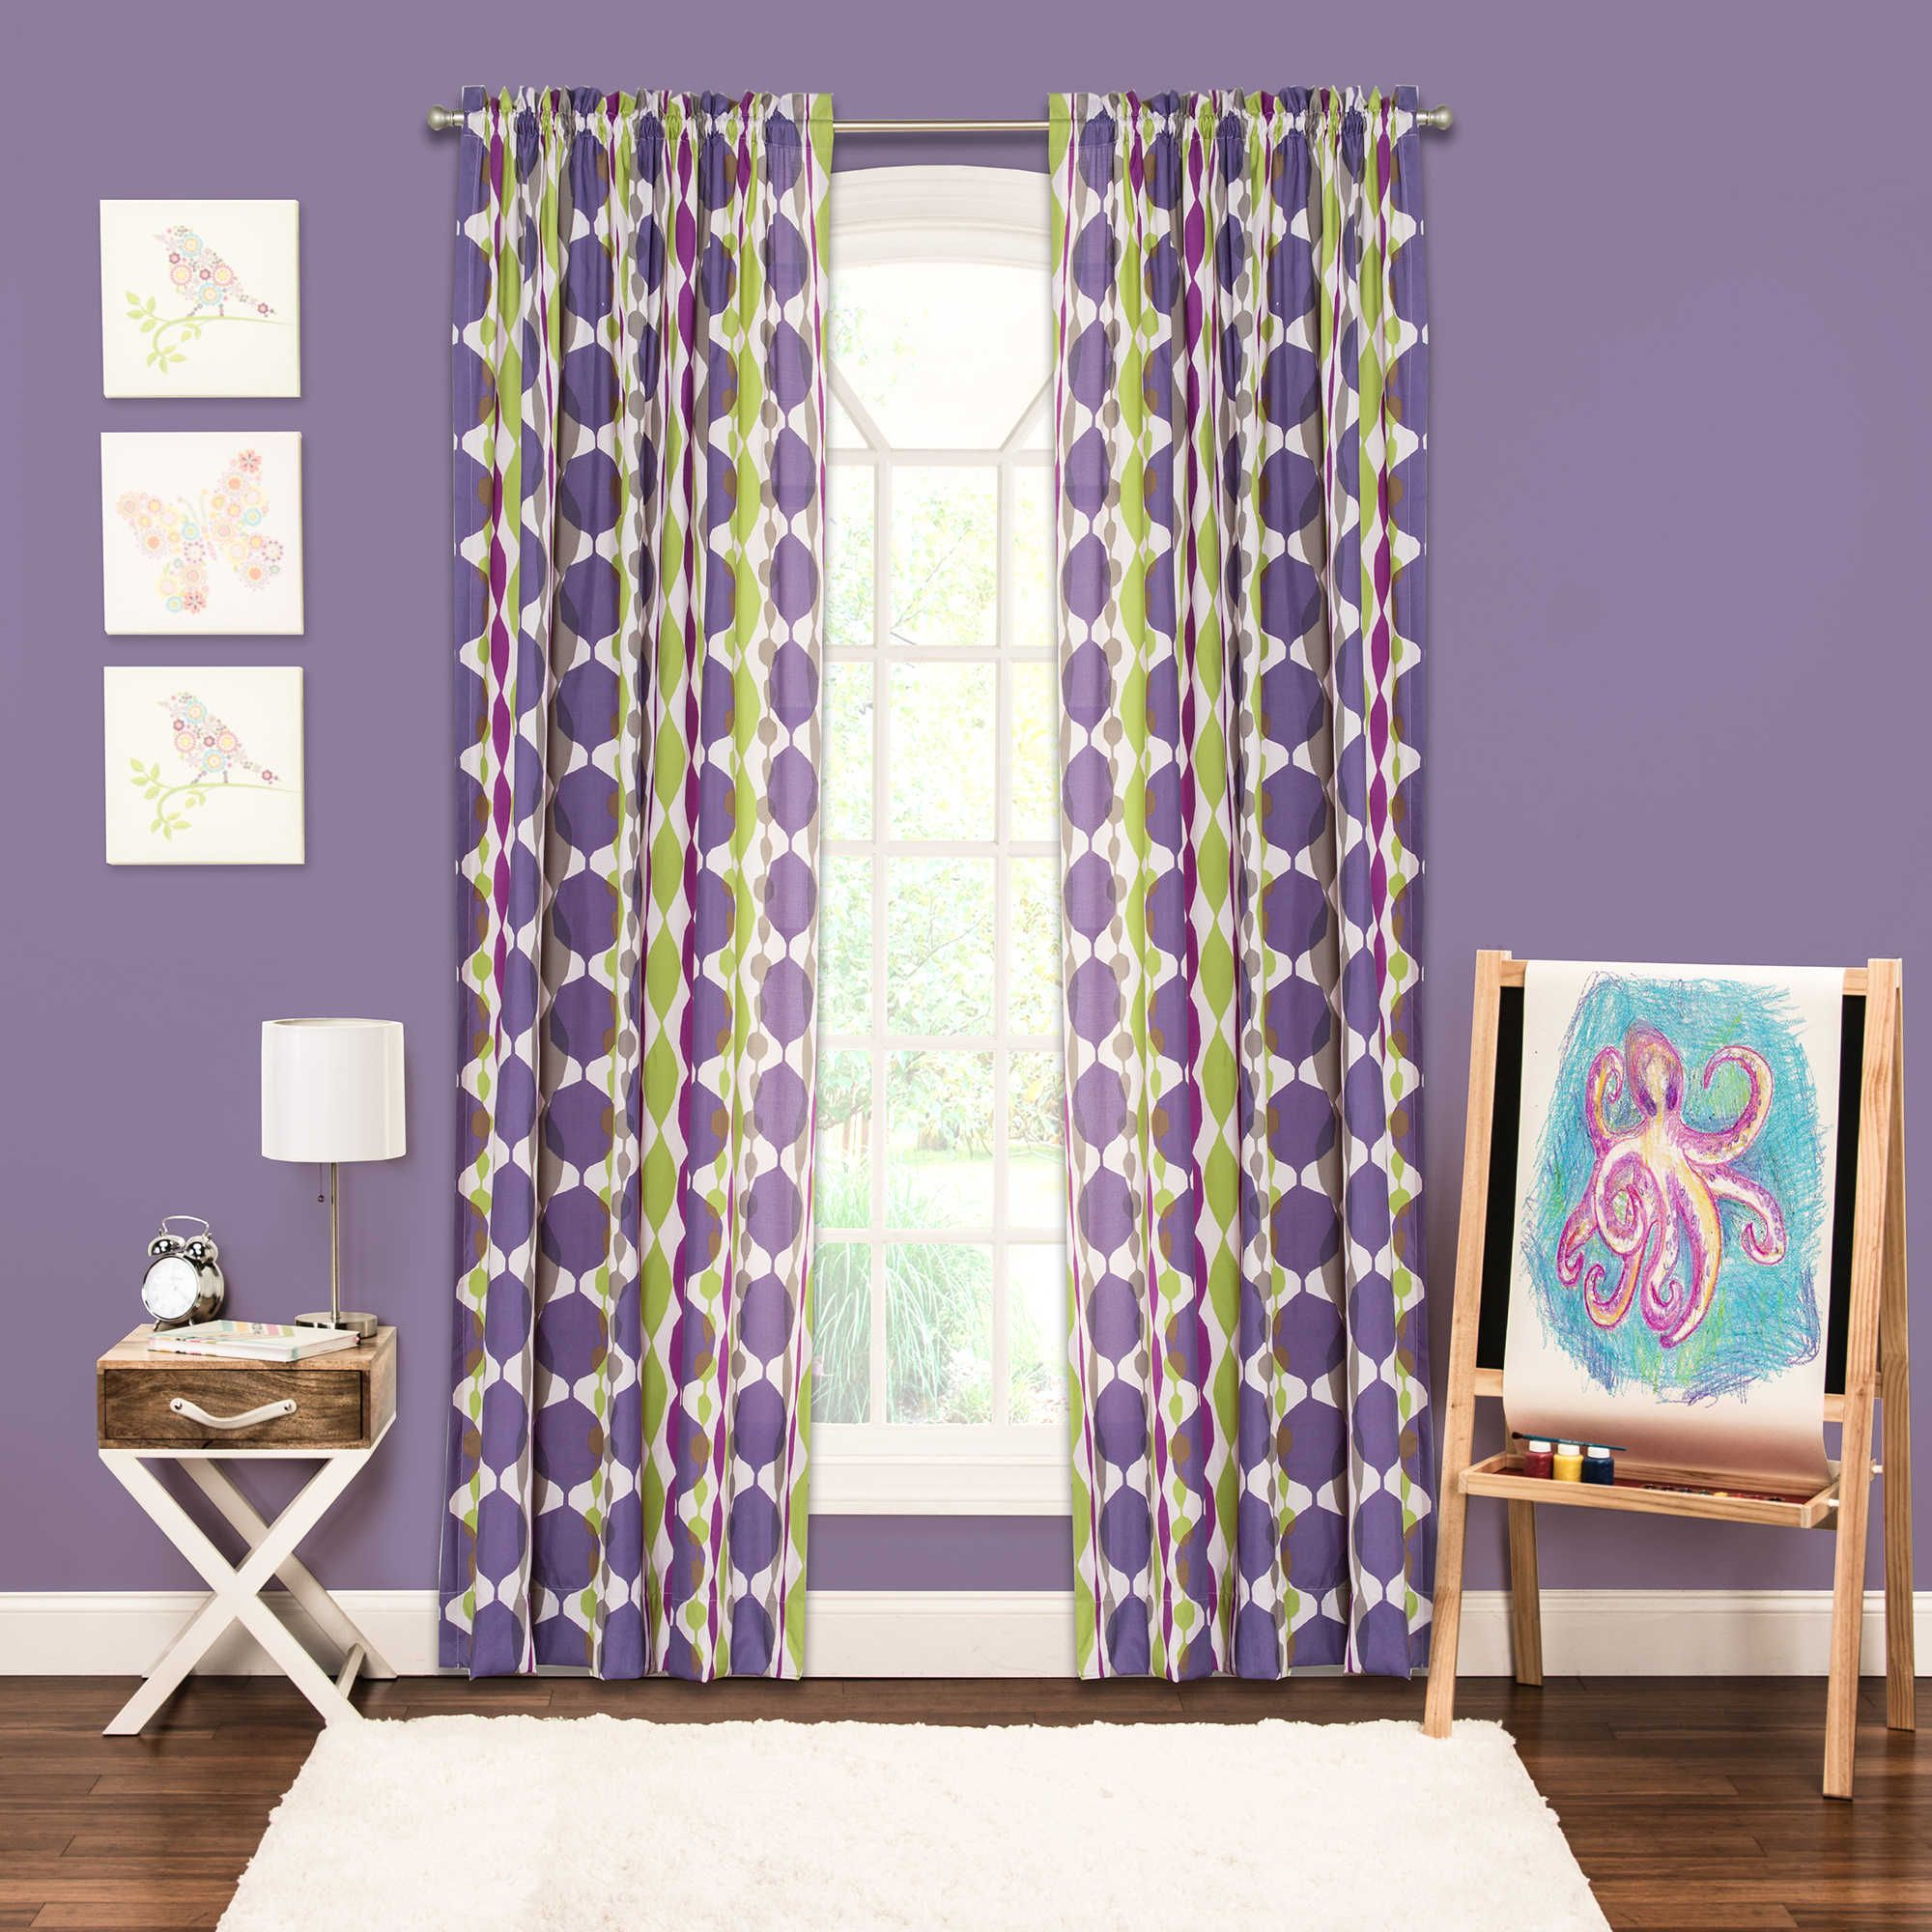 the p or overview lace and drapes wisteria arbor swag valances curtain curtains purple pair valance panels